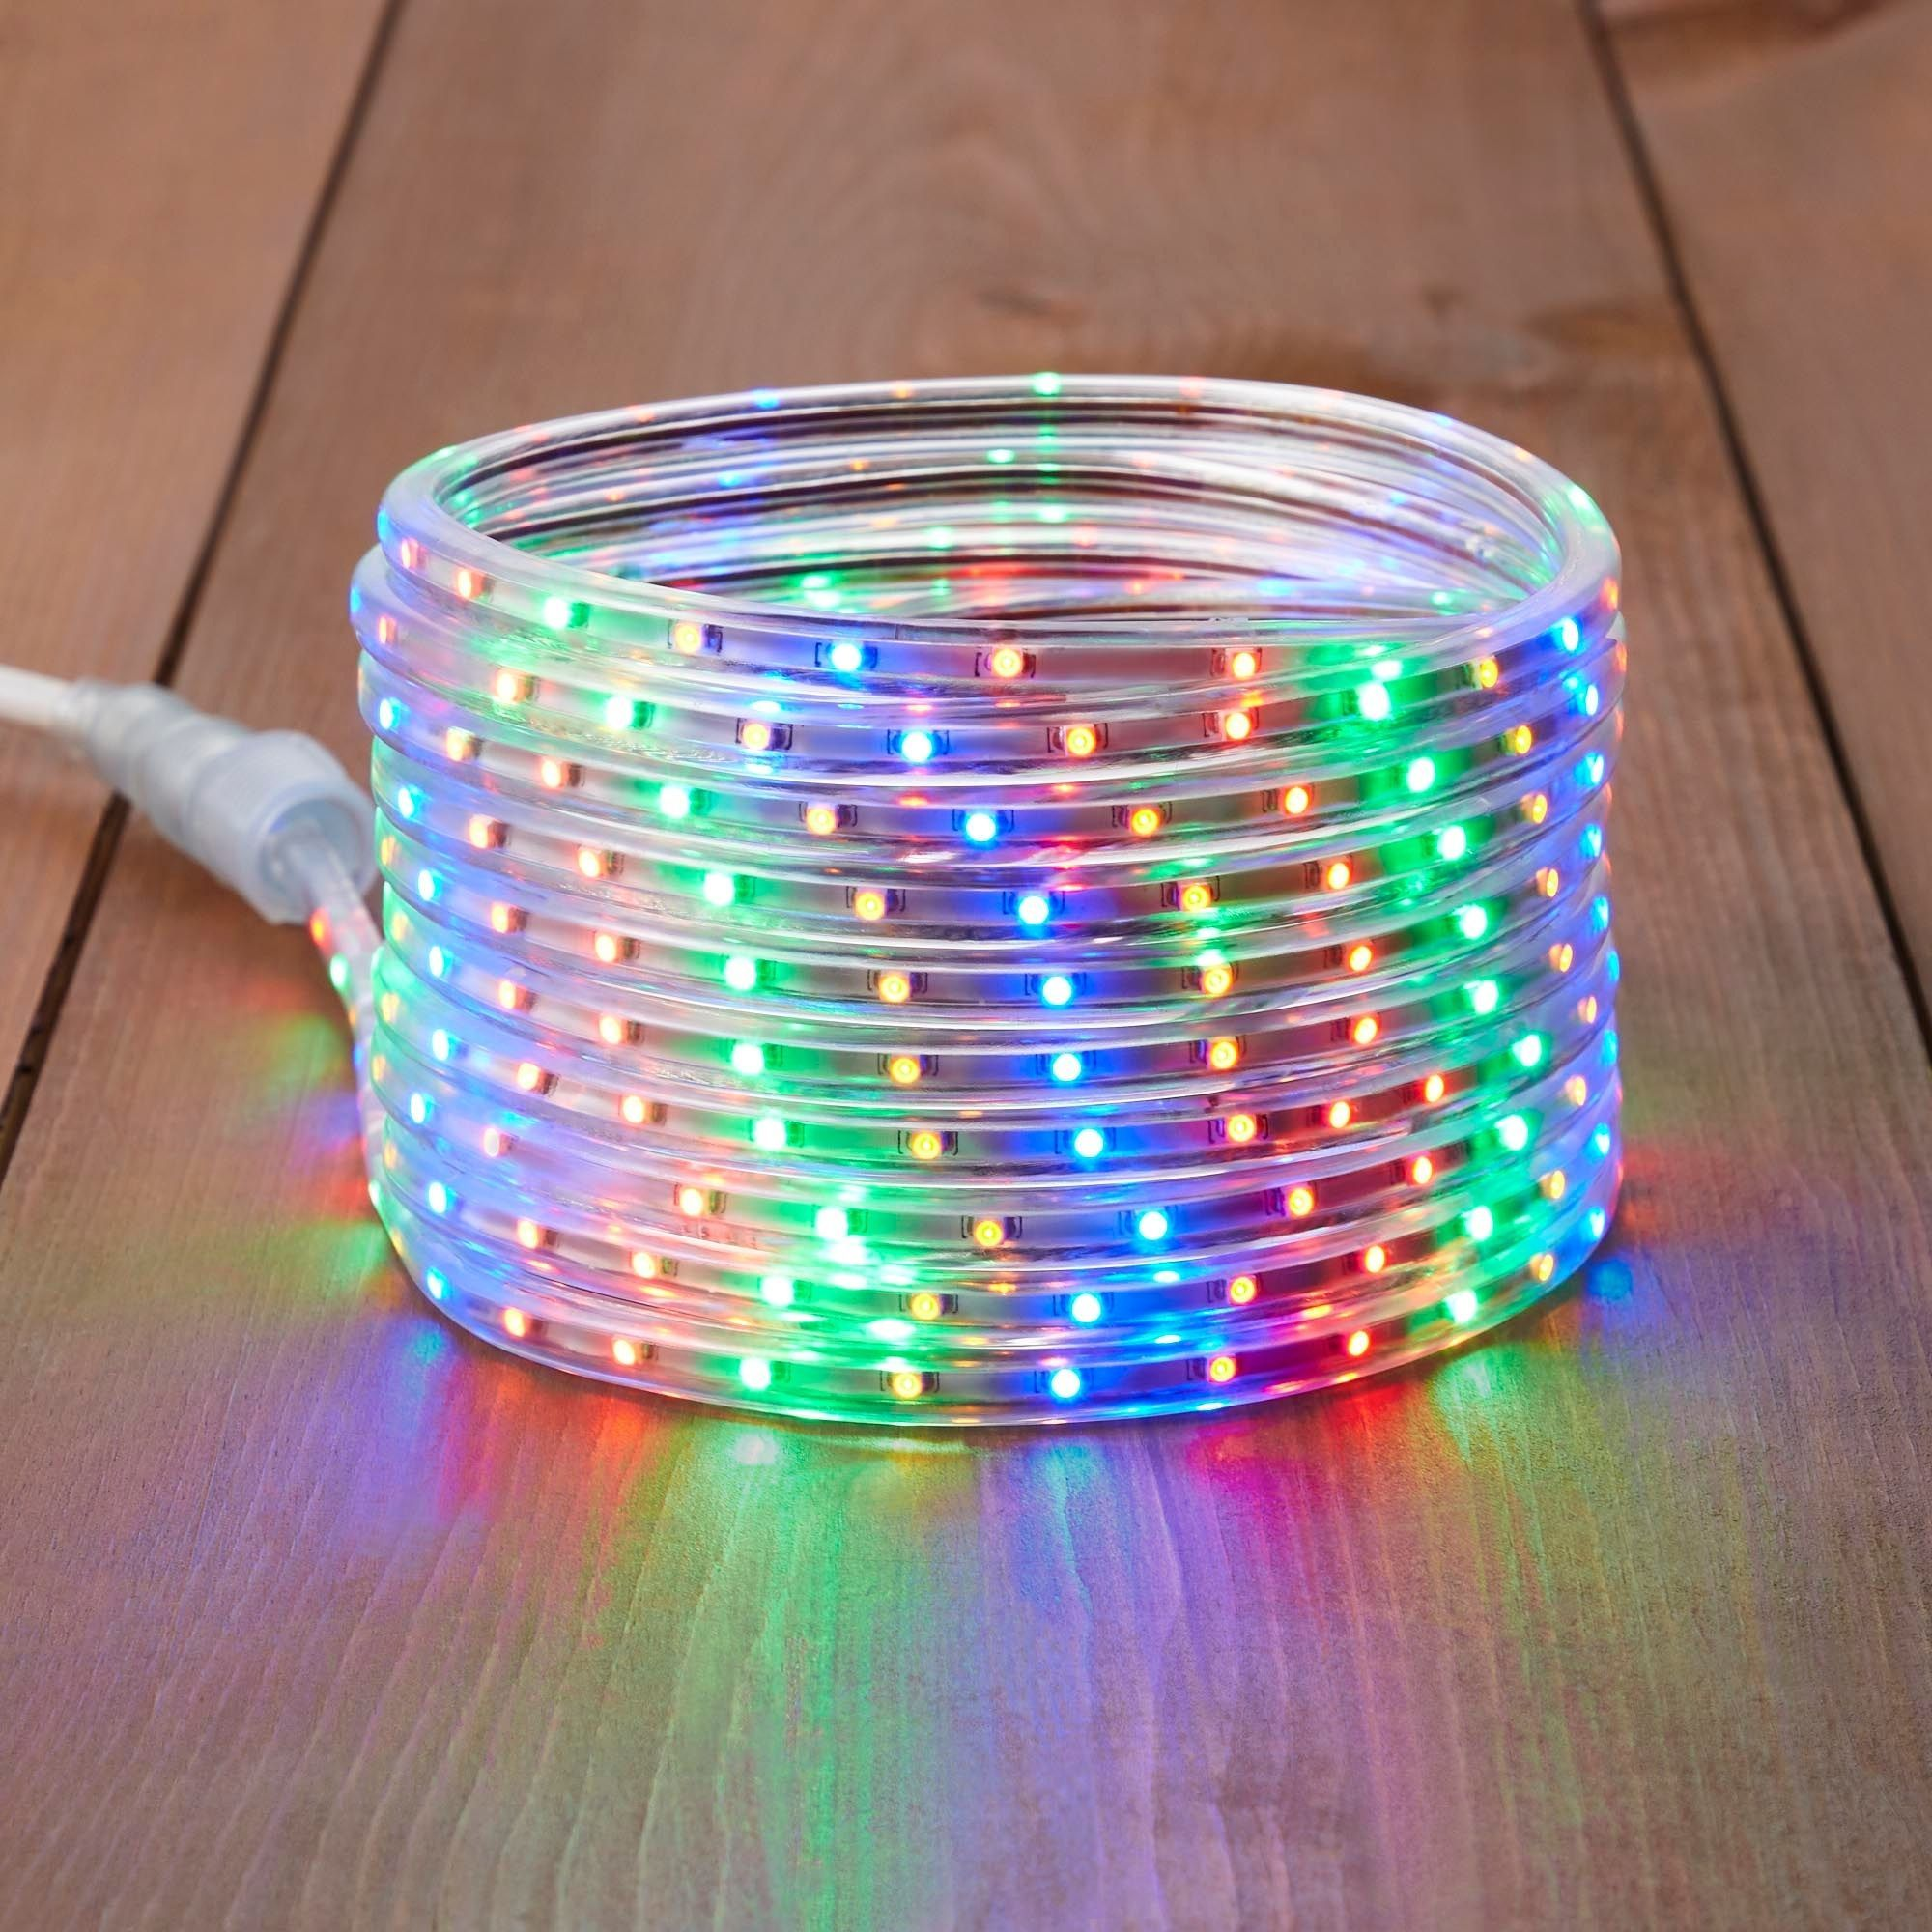 Flexible LED Rope Light - 23-Ft - Multicolor